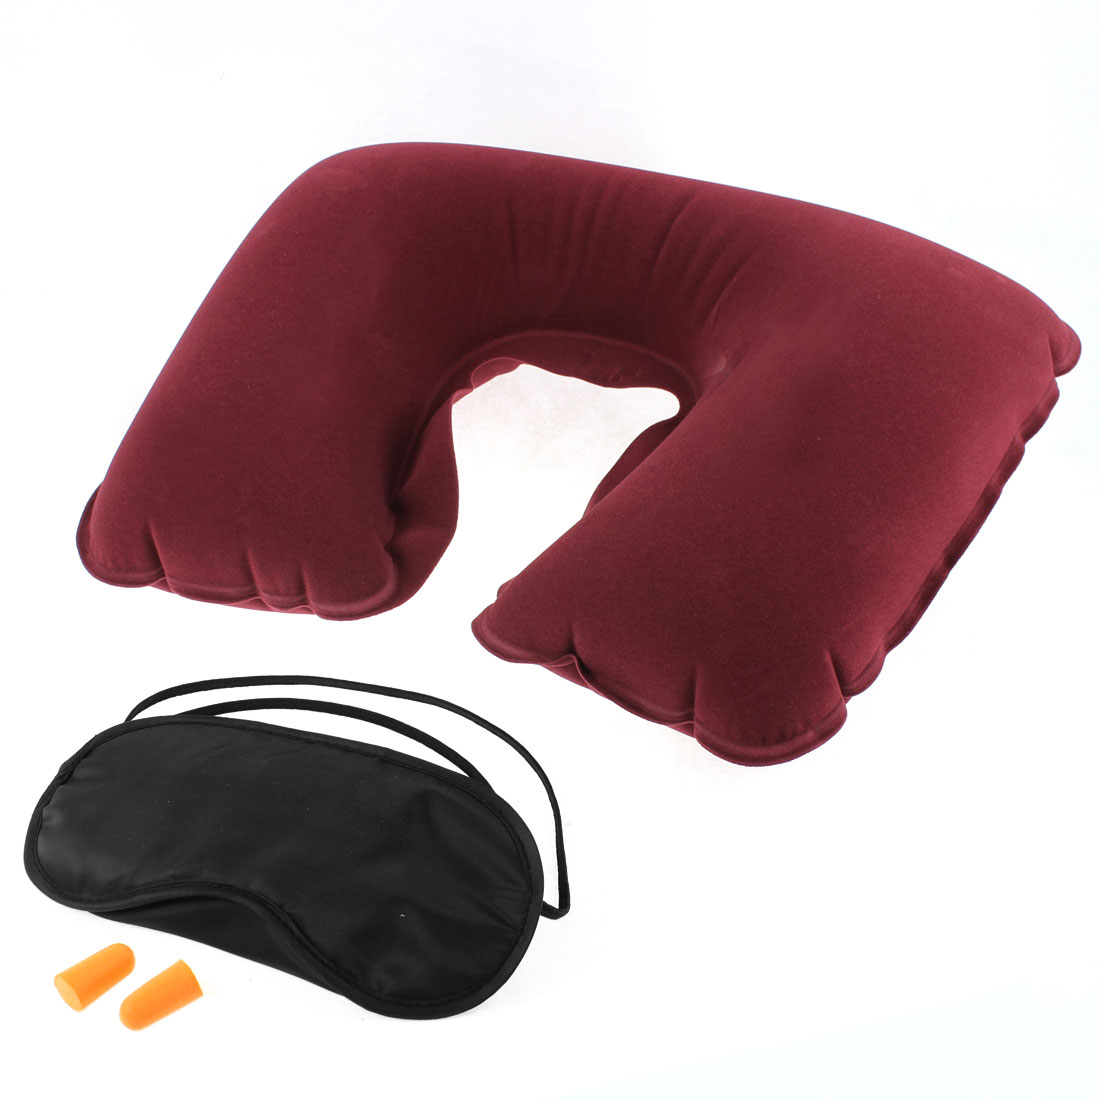 Travel Sleeping Relaxing Head Neck Cushion Pillow Eye Mask Earplug 3 in 1